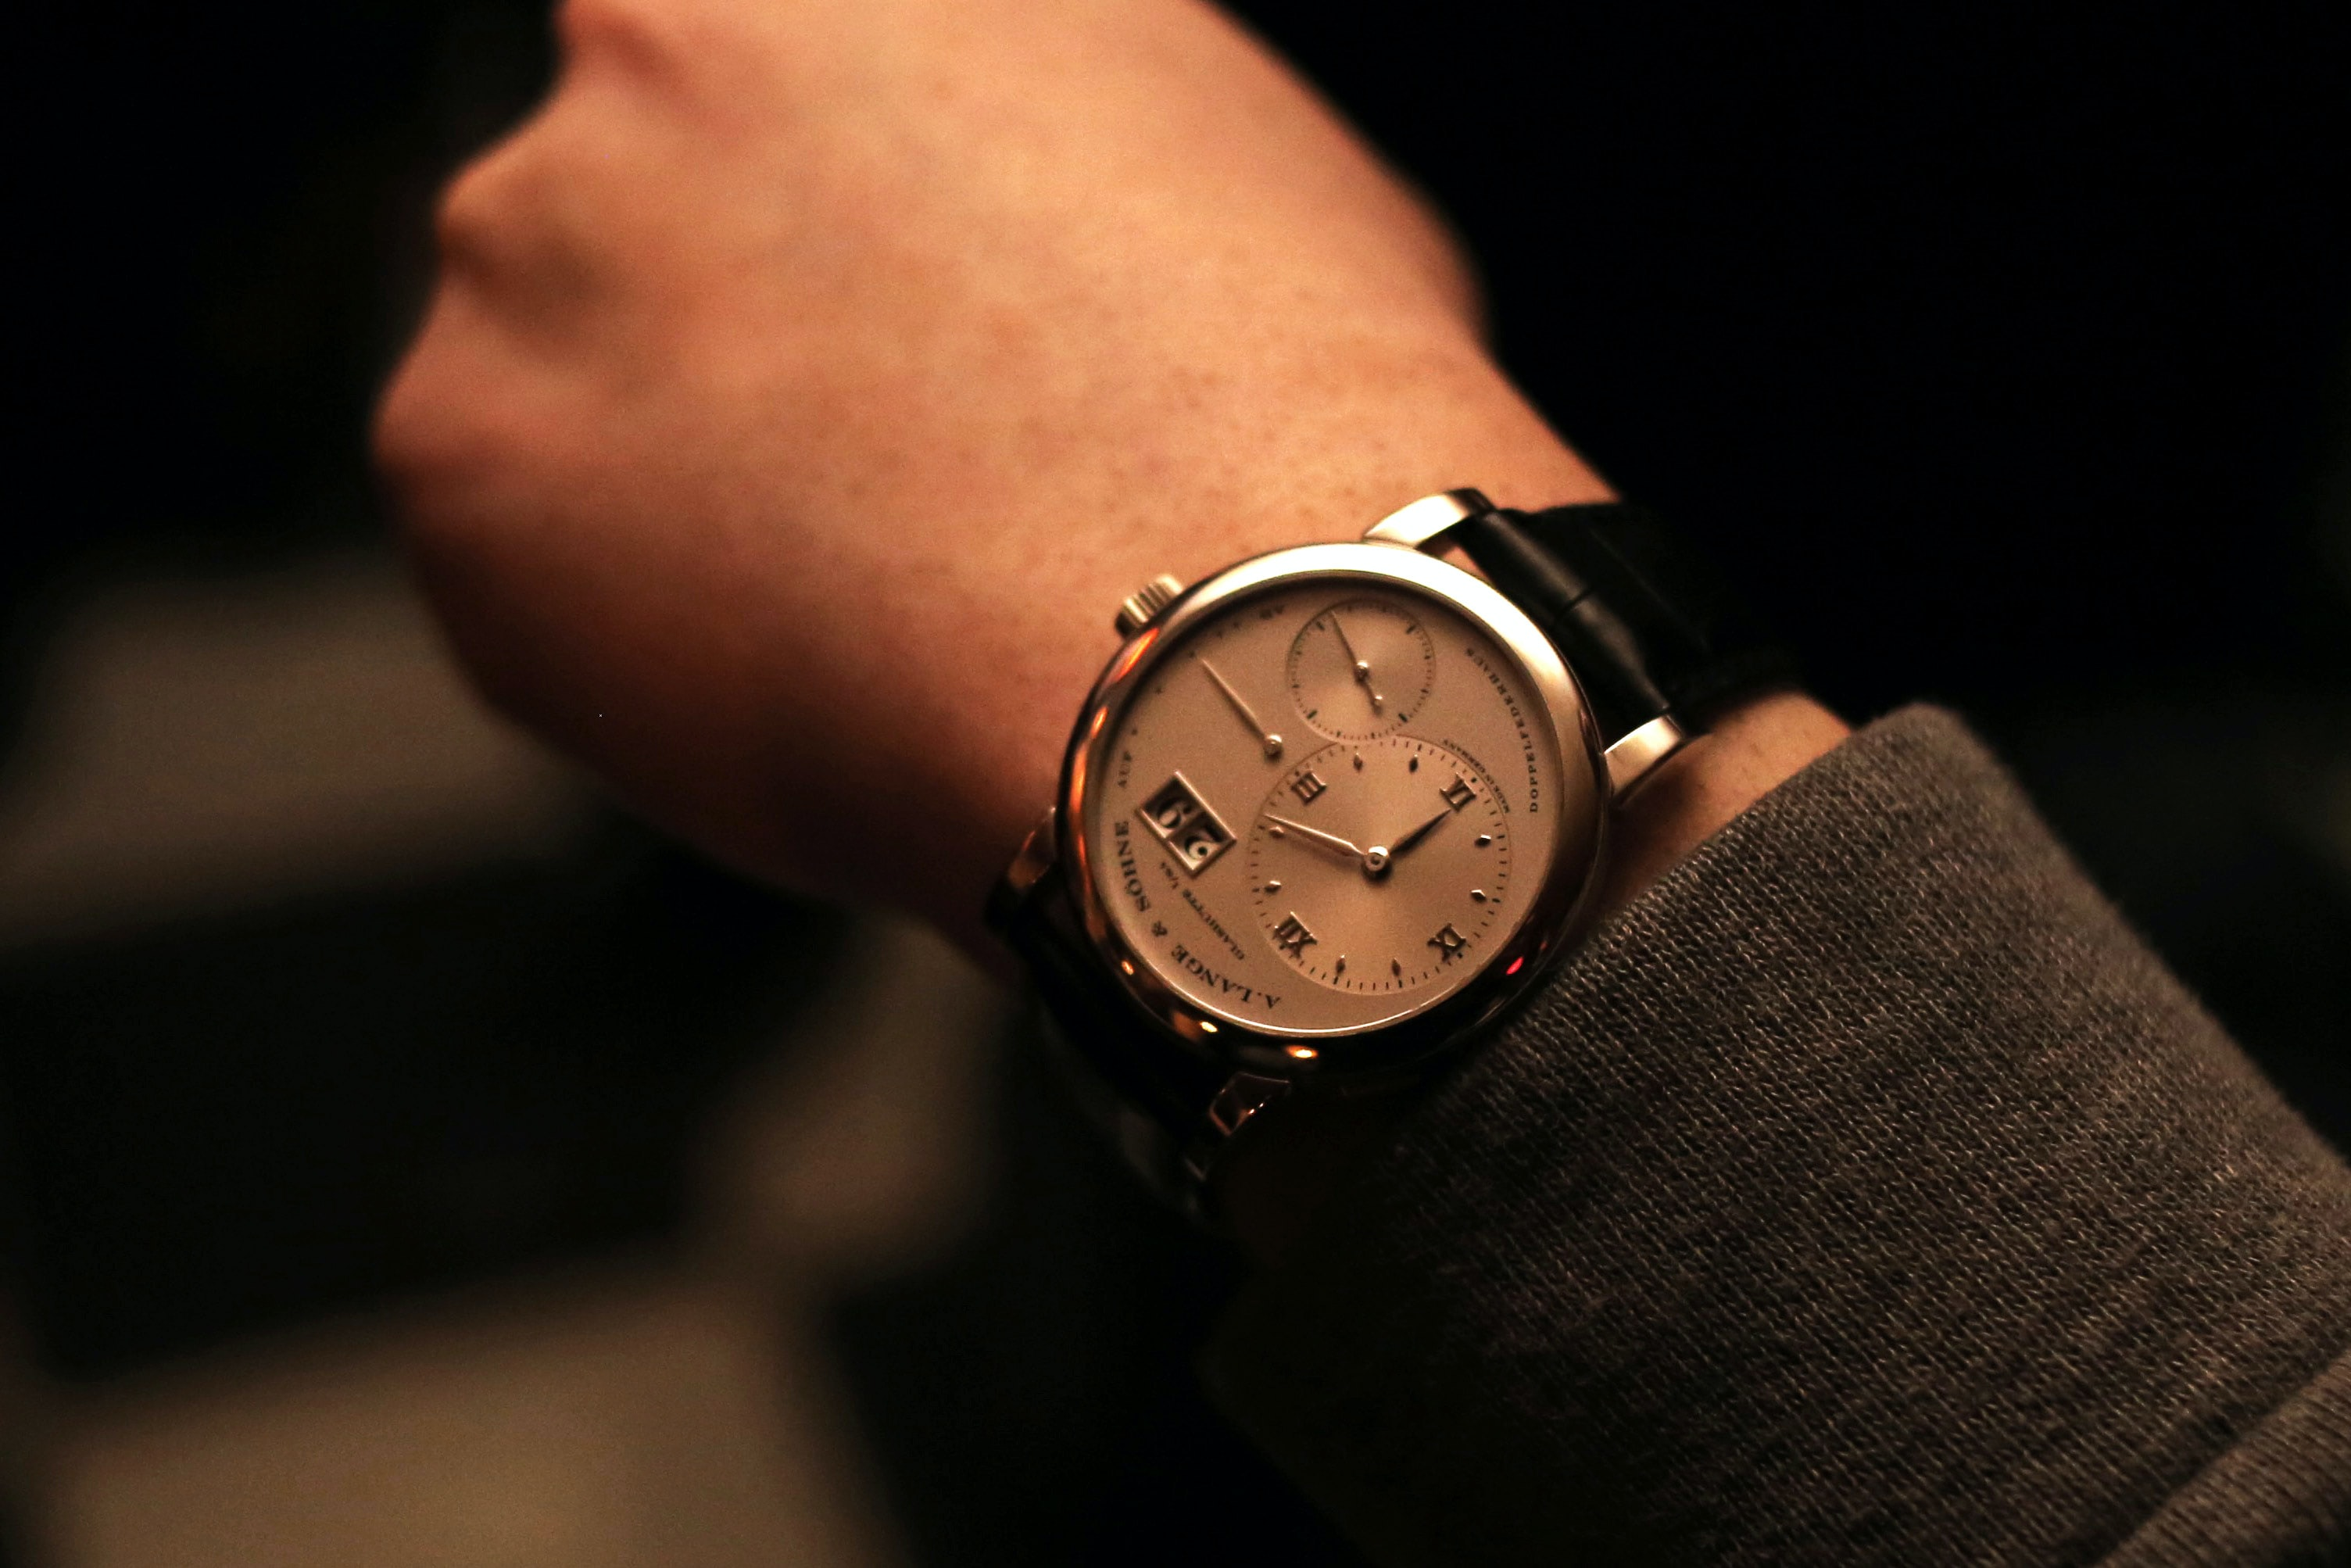 Watch Spotting: The HODINKEE #LeapDay Celebration In NYC Watch Spotting: The HODINKEE #LeapDay Celebration In NYC 588A9814